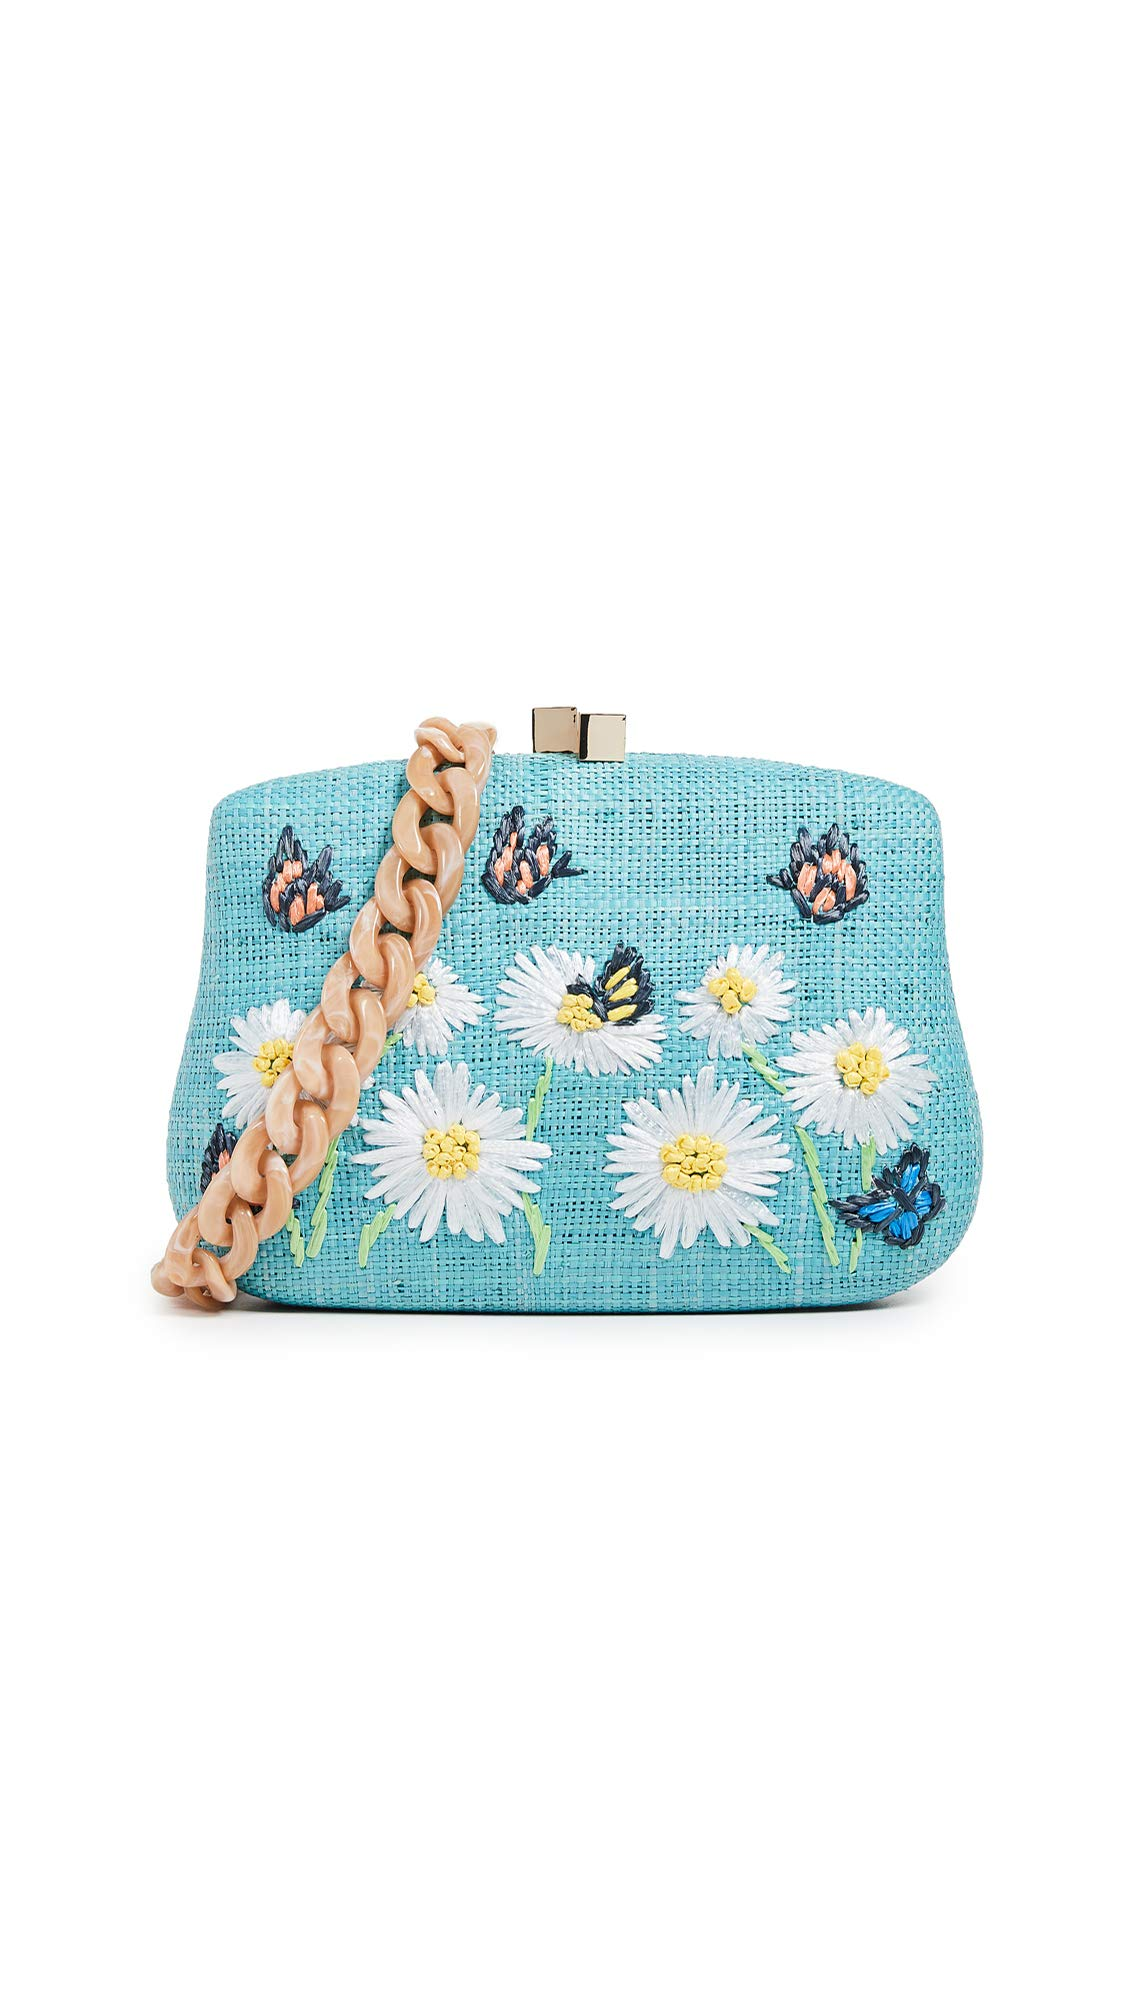 Serpui Marie Women's Blair Daisy Embroidered Minaudiere, Turquoise, Blue, Graphic, One Size